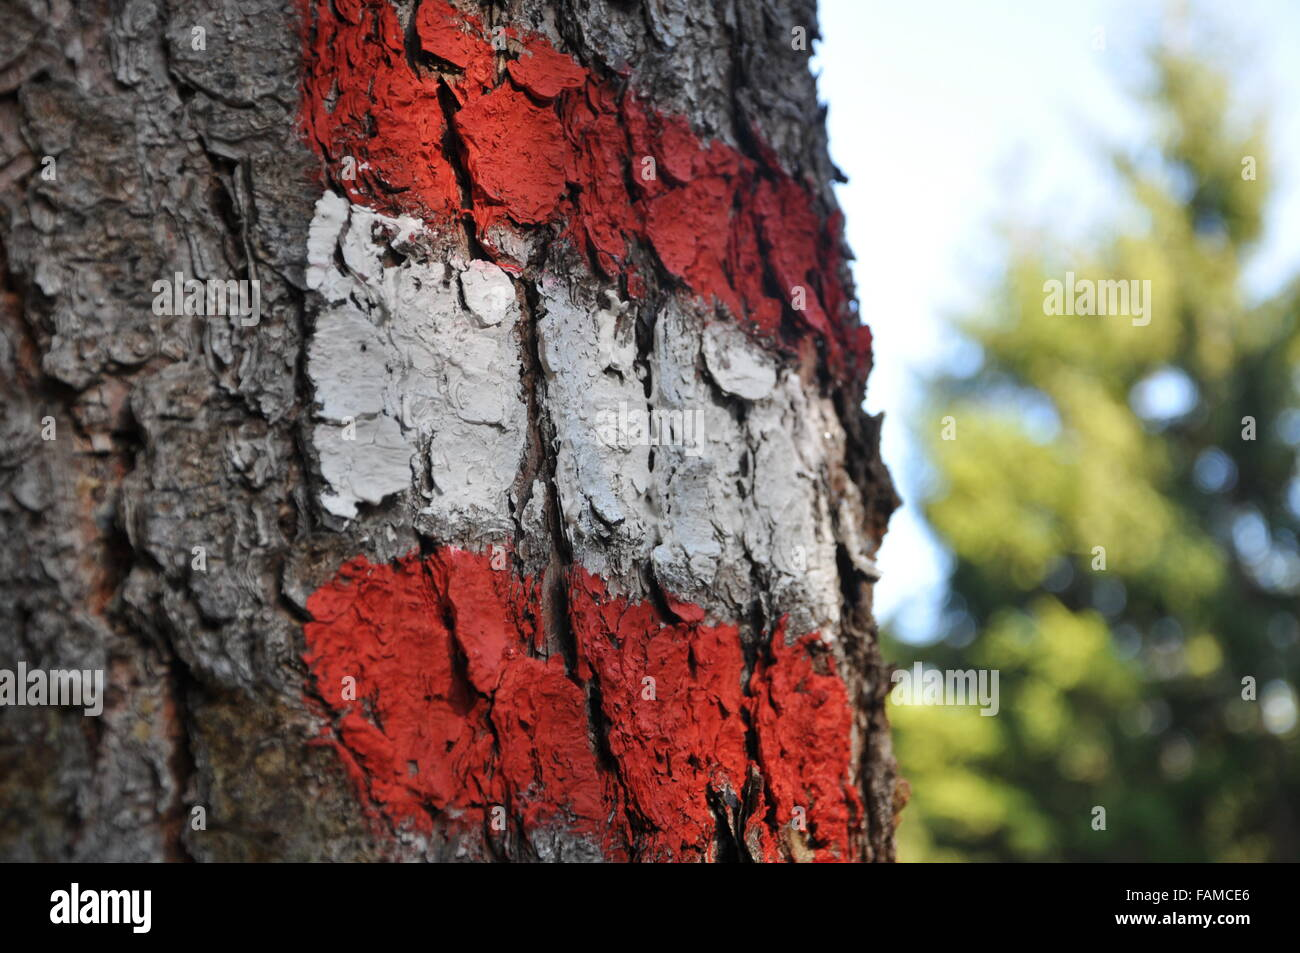 red white red painted on tree - Stock Image